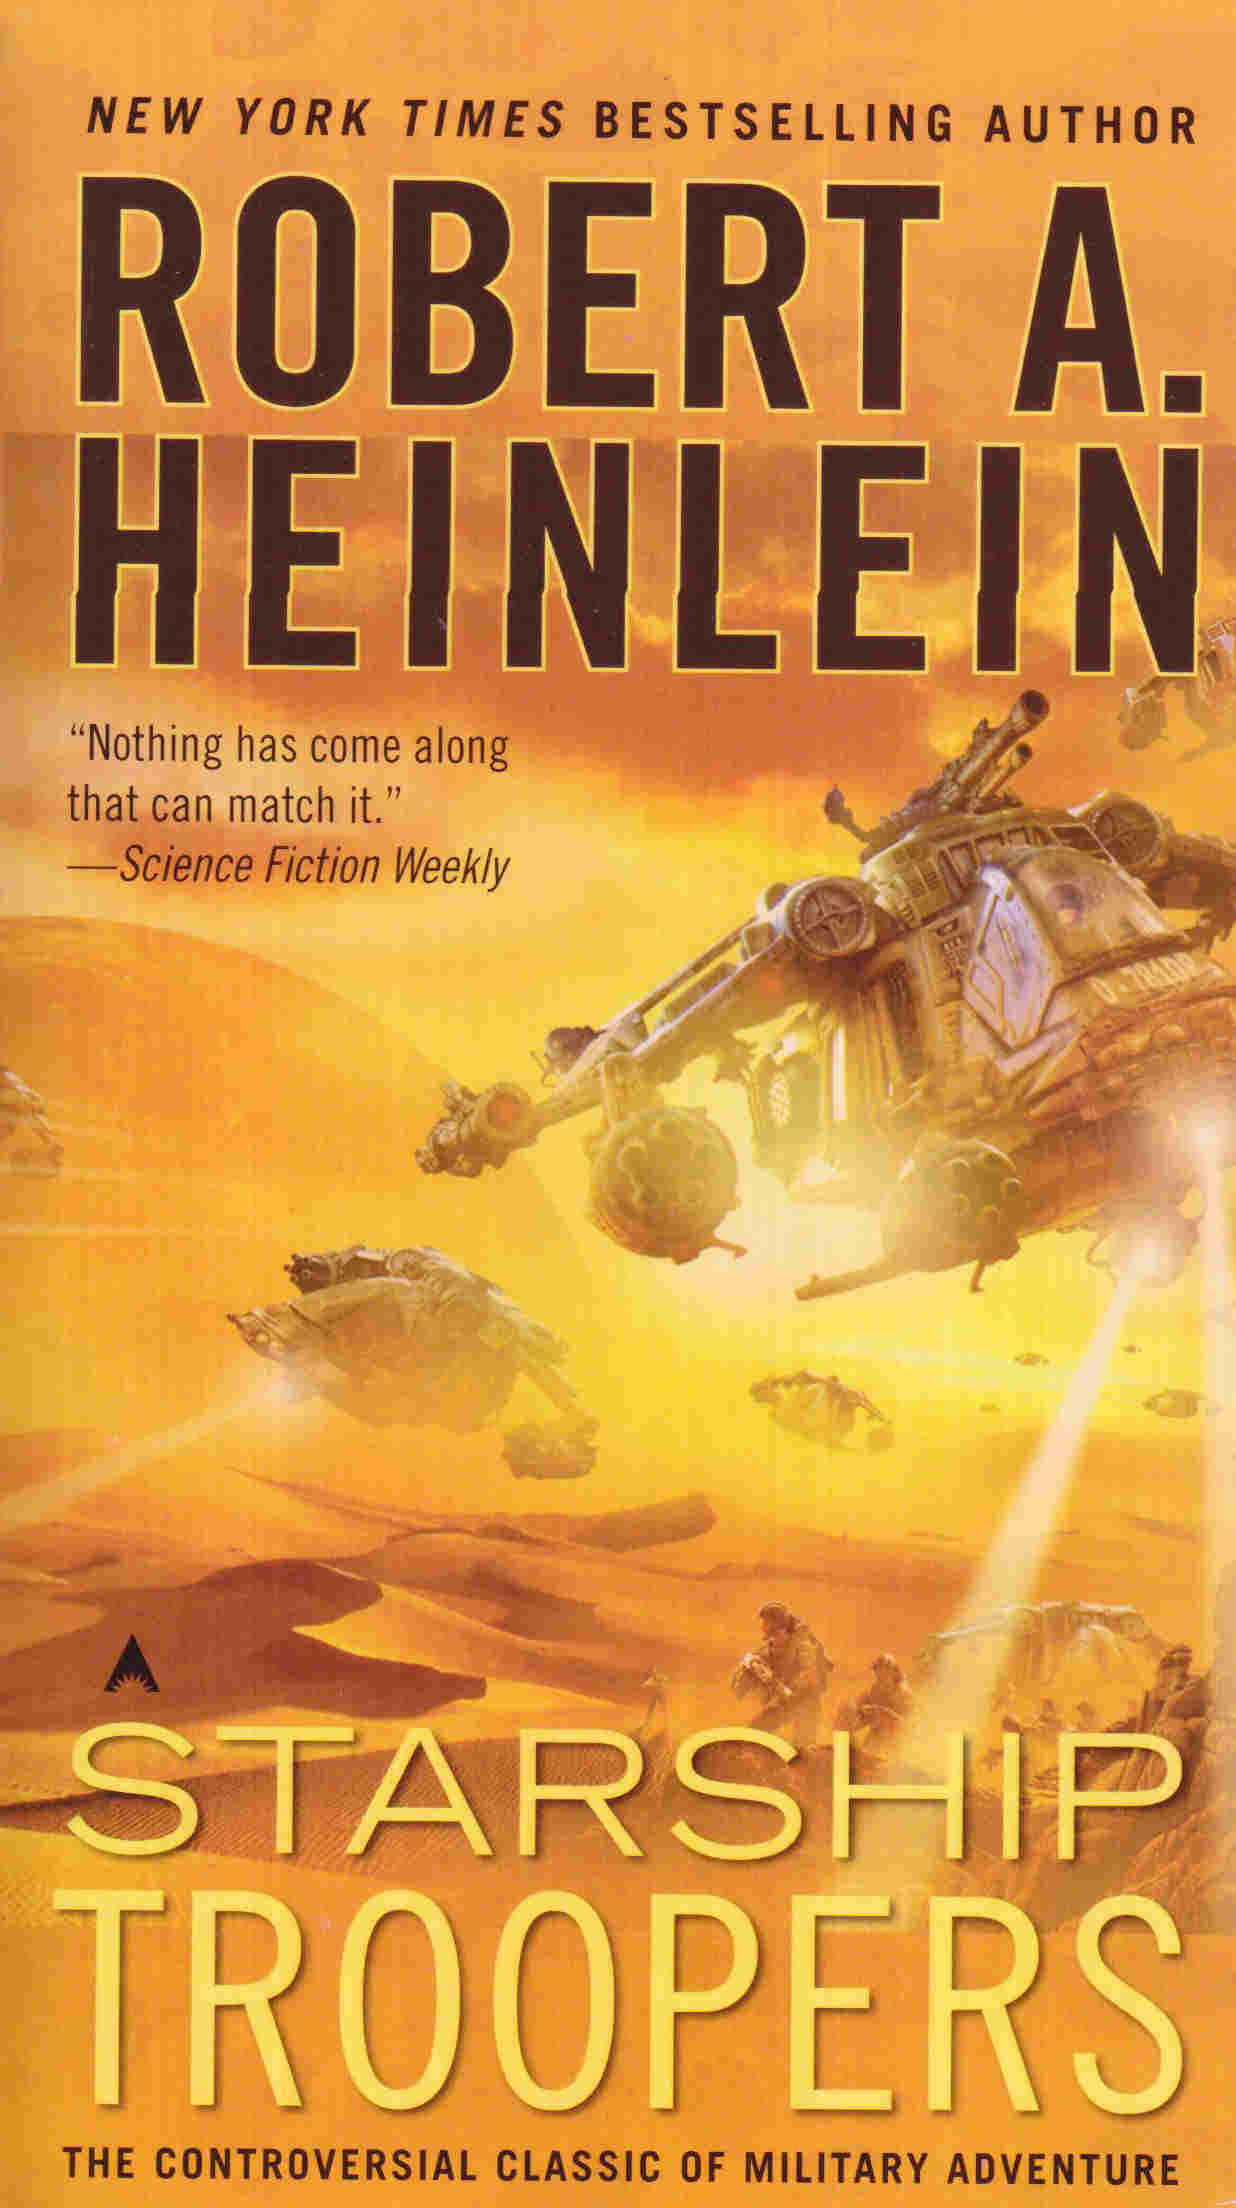 The cover of the Starship Troopers book